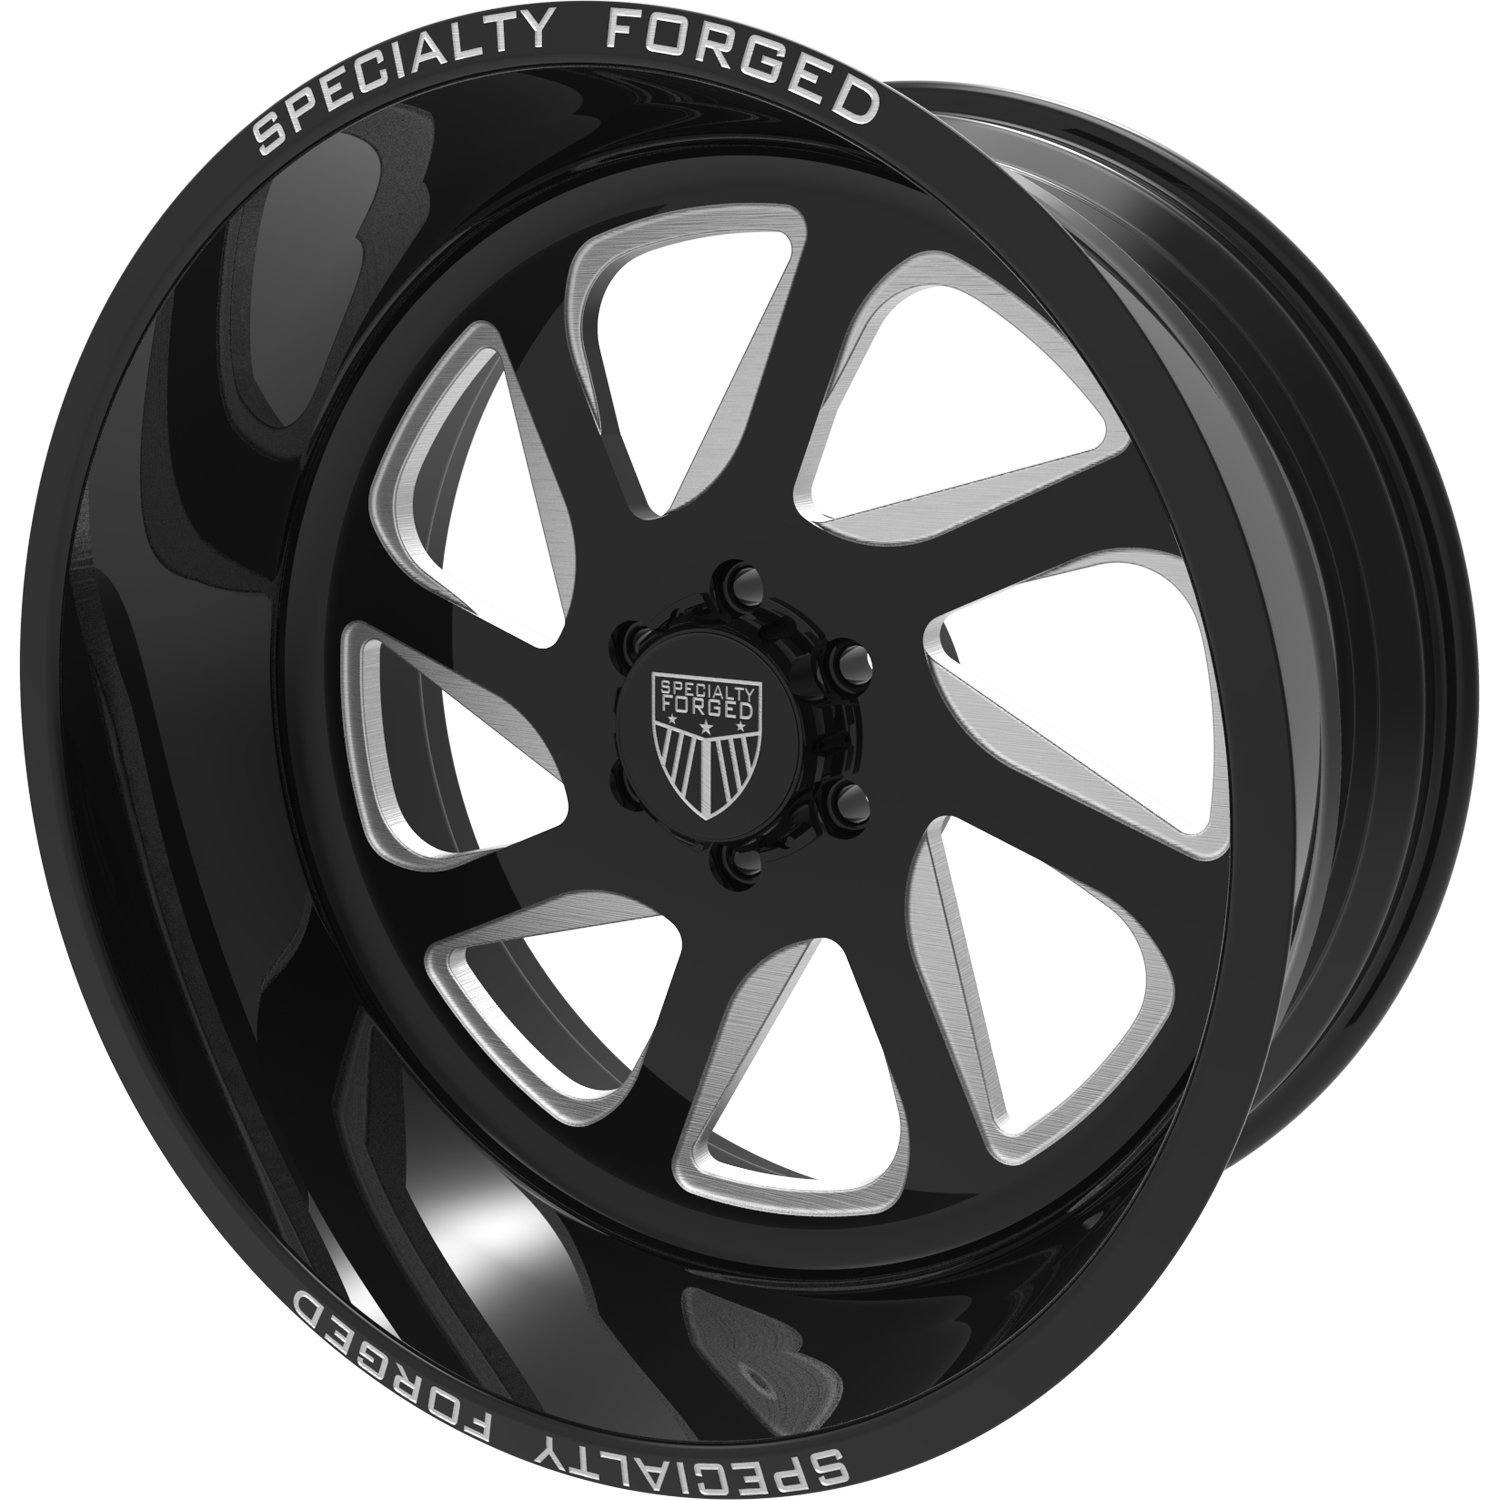 Specialty Forged SF017 20x14  76mm | SF017 2014 6x550 BM